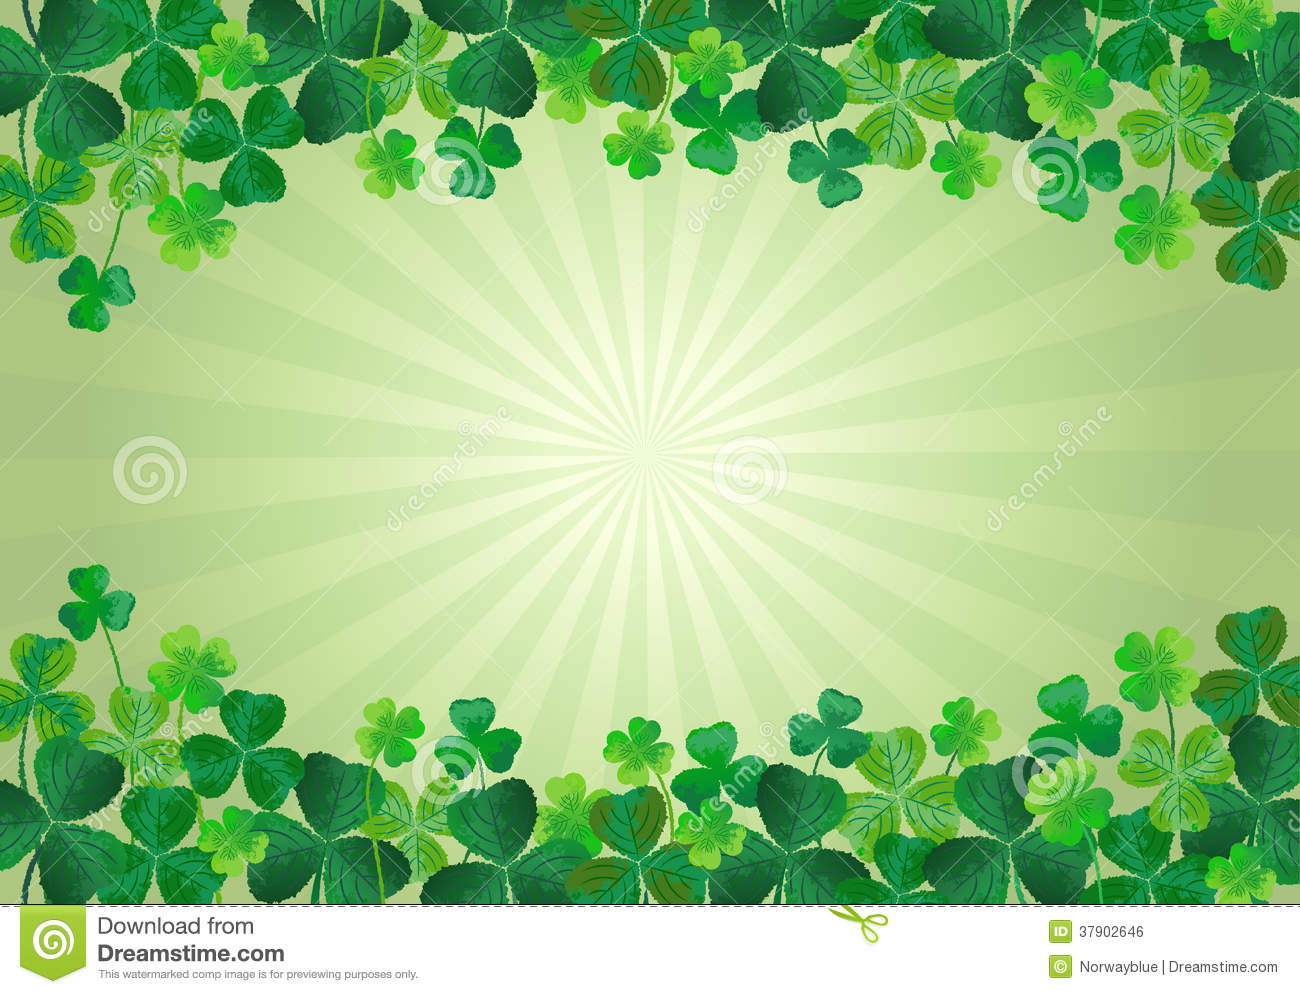 patricks day shamrock background - photo #21